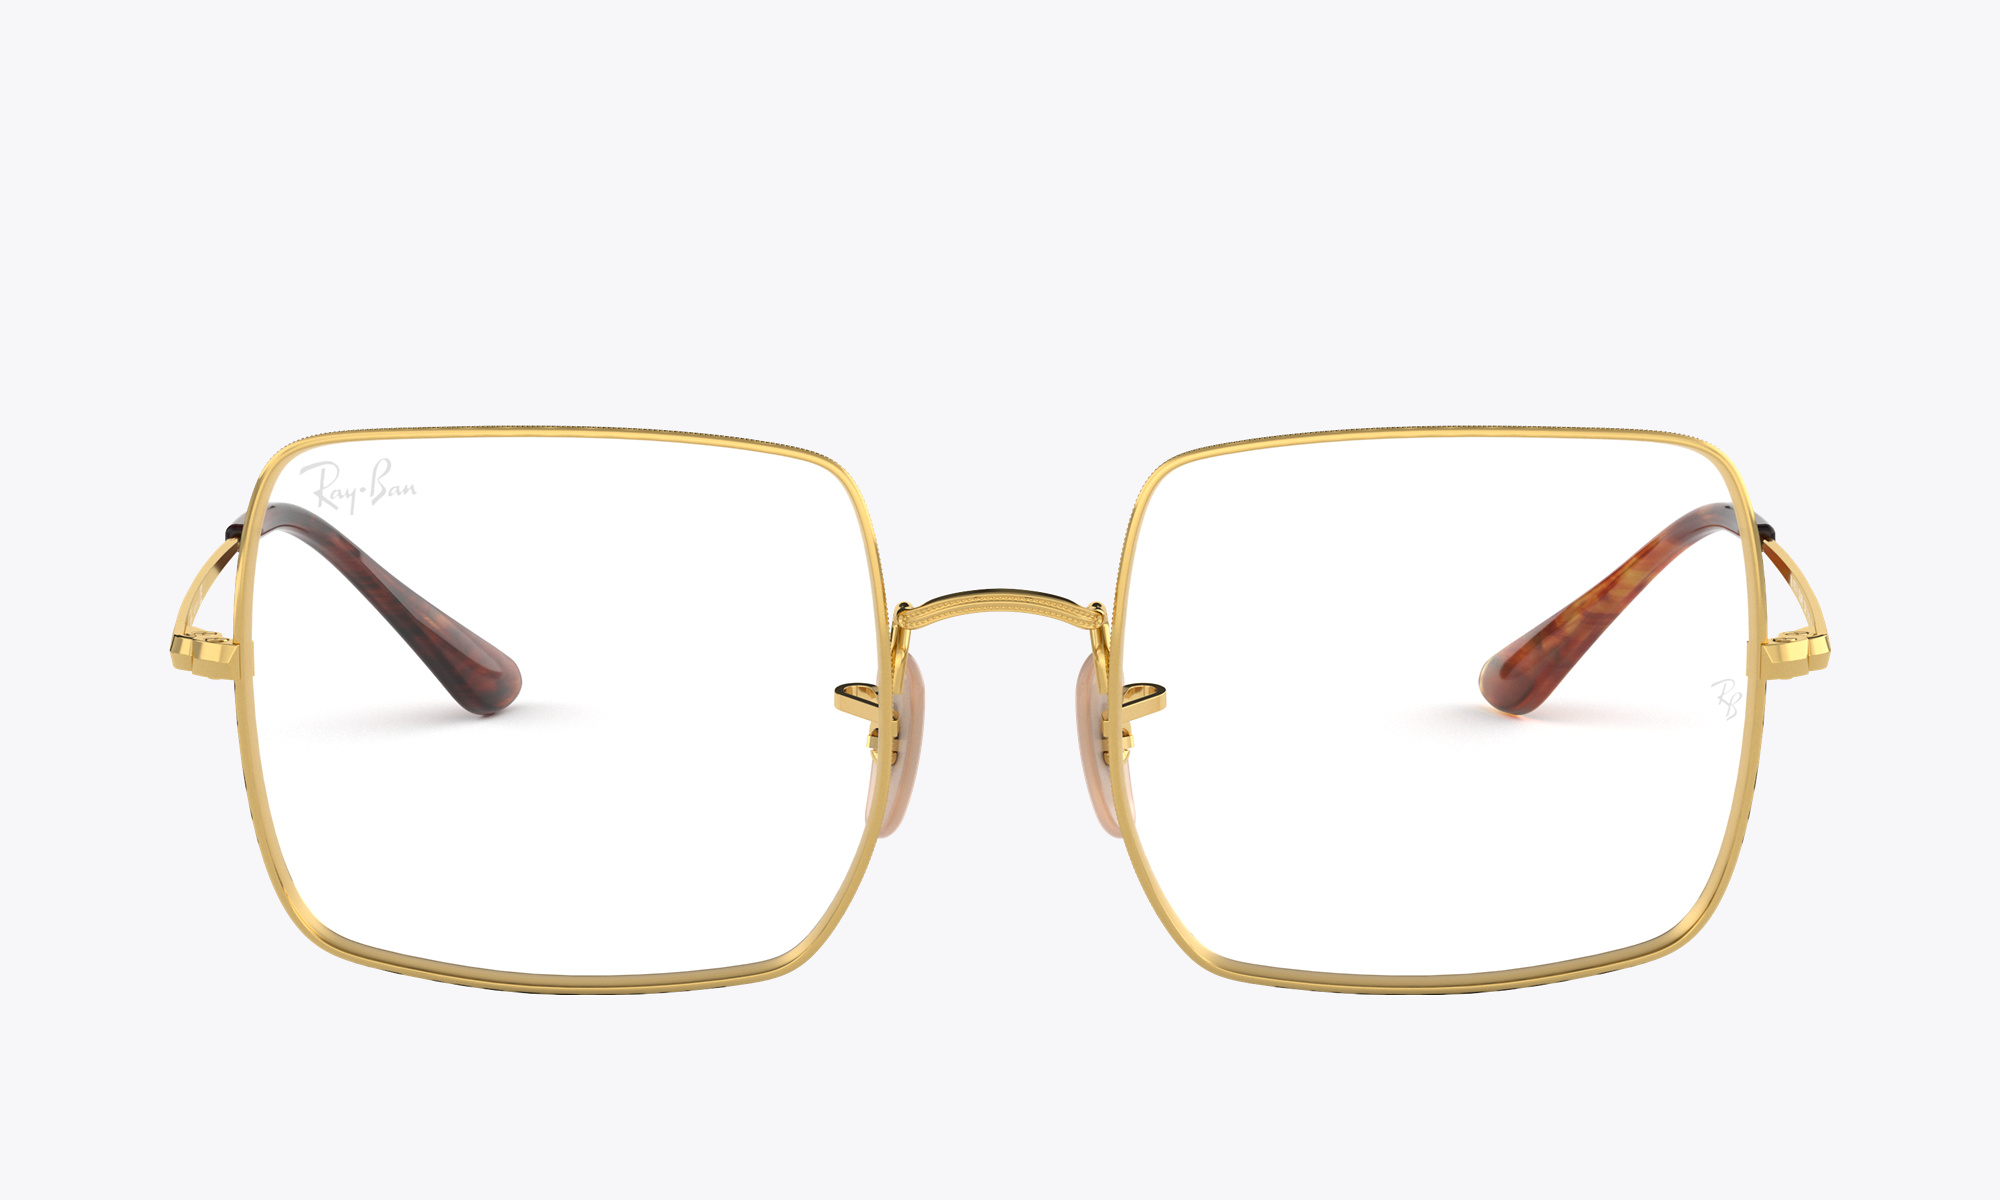 Image of Ray-Ban SQUARE 1971 OPTICS color Gold